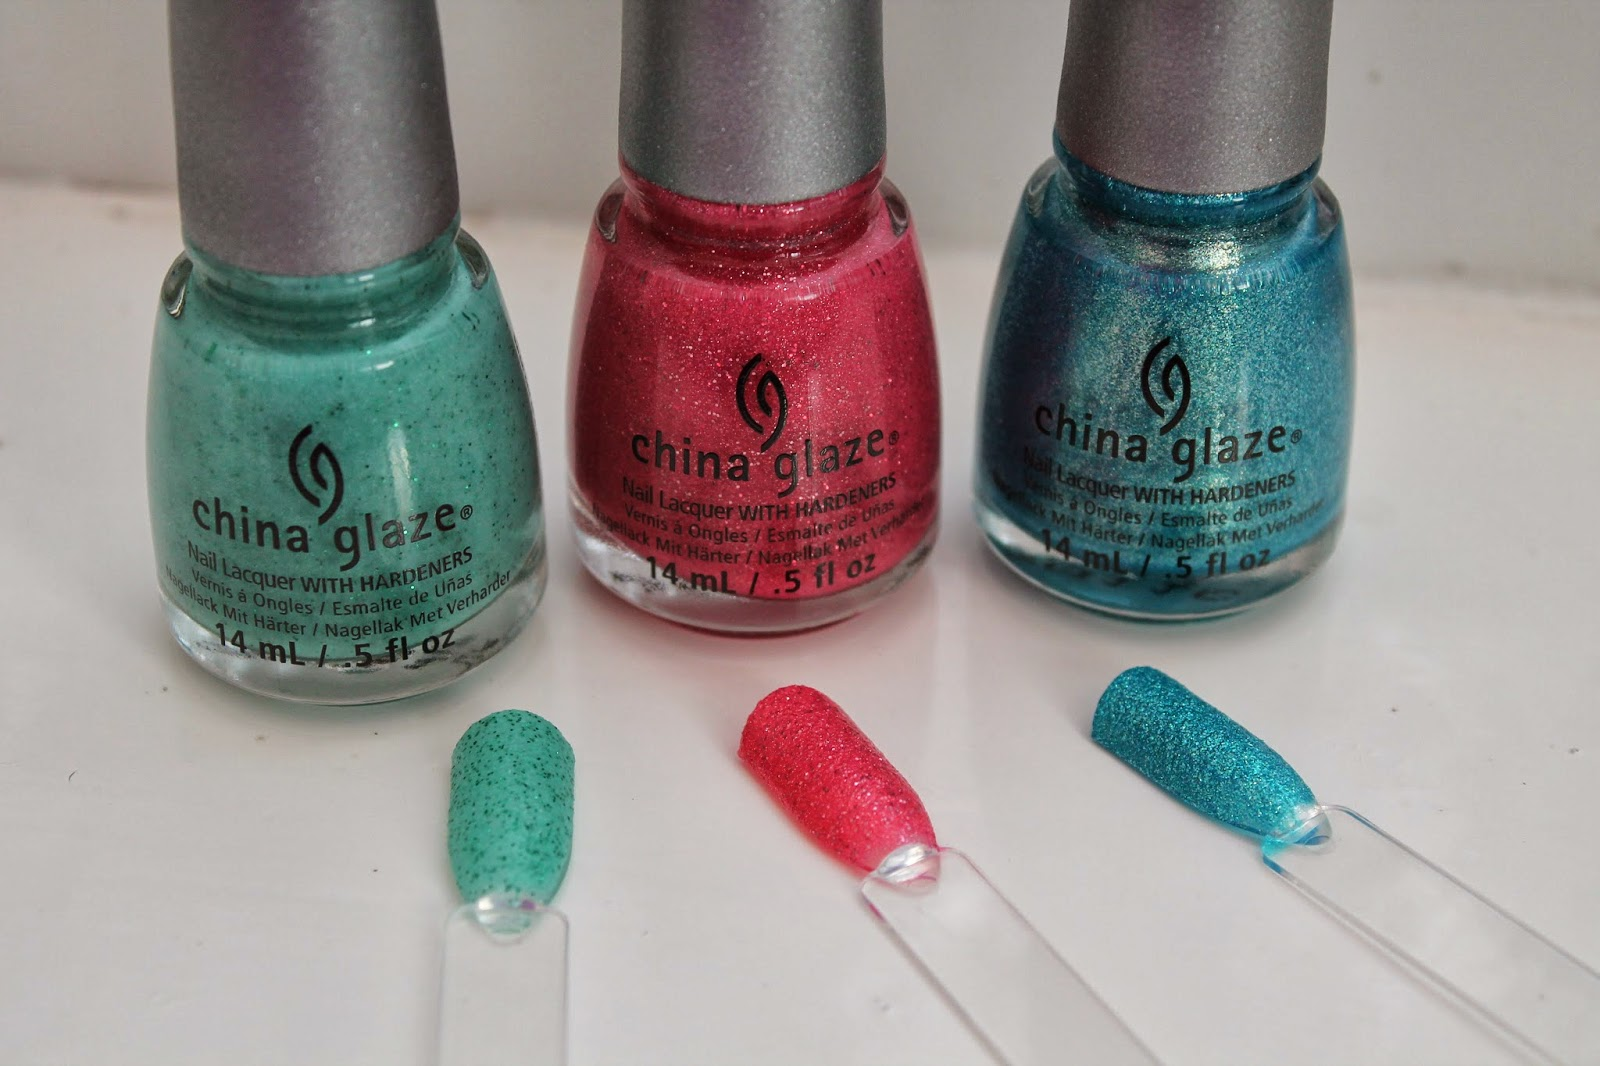 China Glaze Sea Goddess Swatches and Review